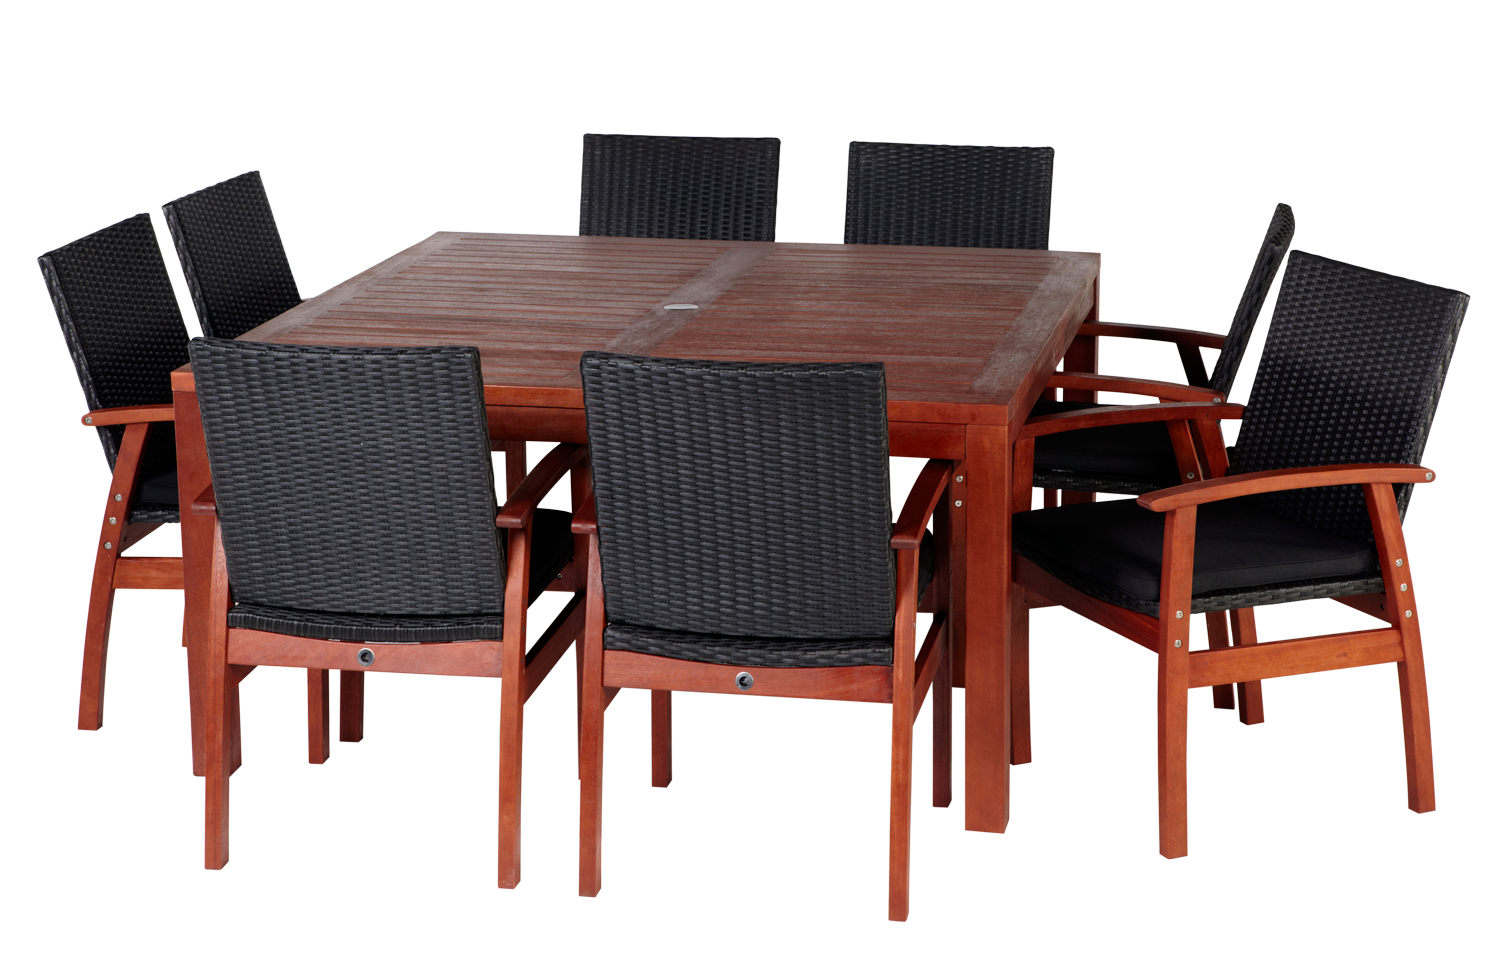 Png transparent free images. Furniture clipart furniture shop